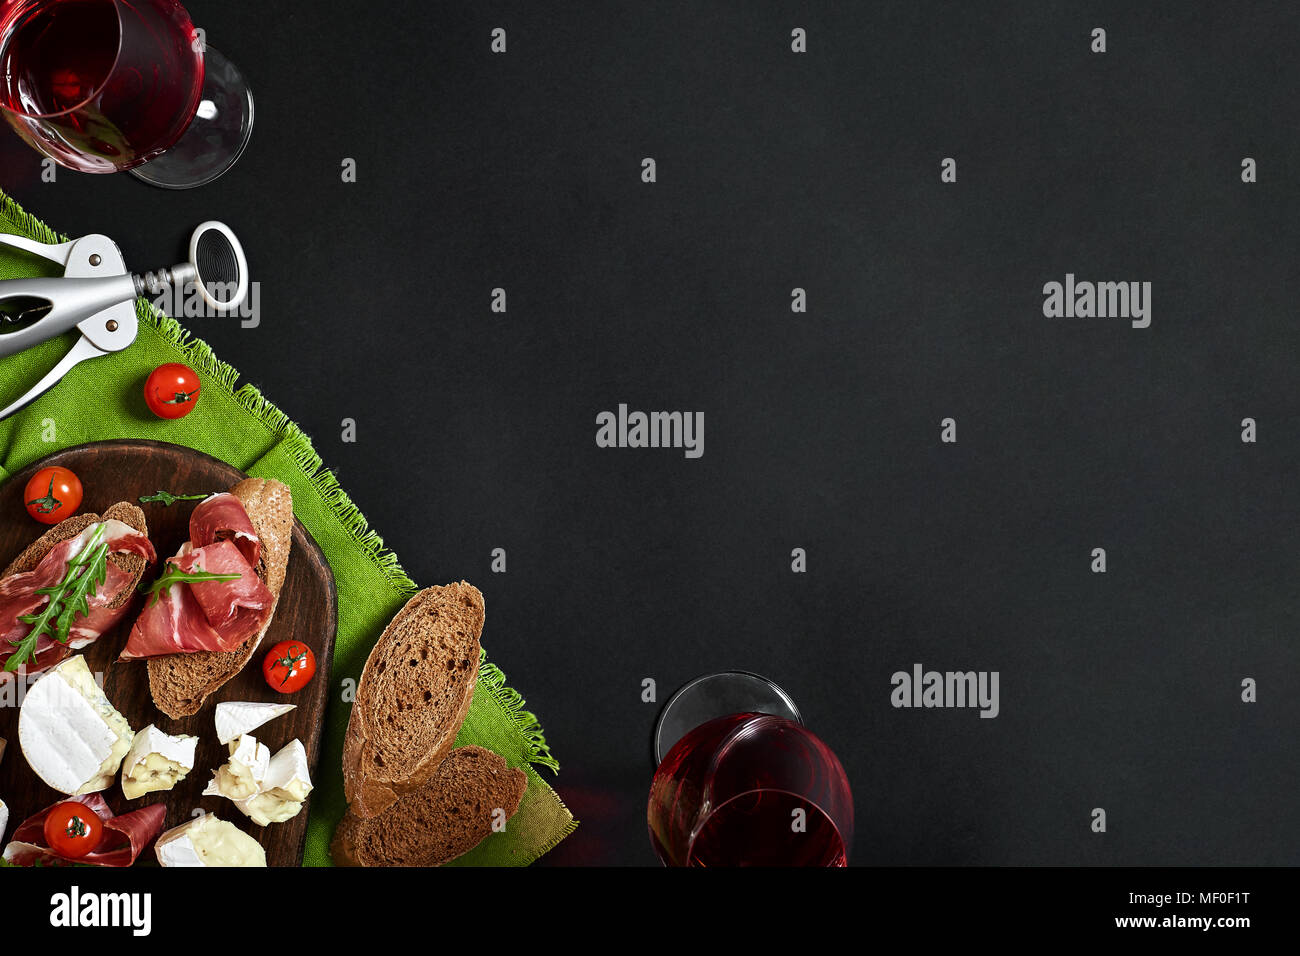 Prosciutto, salami, baguette slices, tomatoes and nutson rustic wooden board, two glasses of red wine over black background - Stock Image